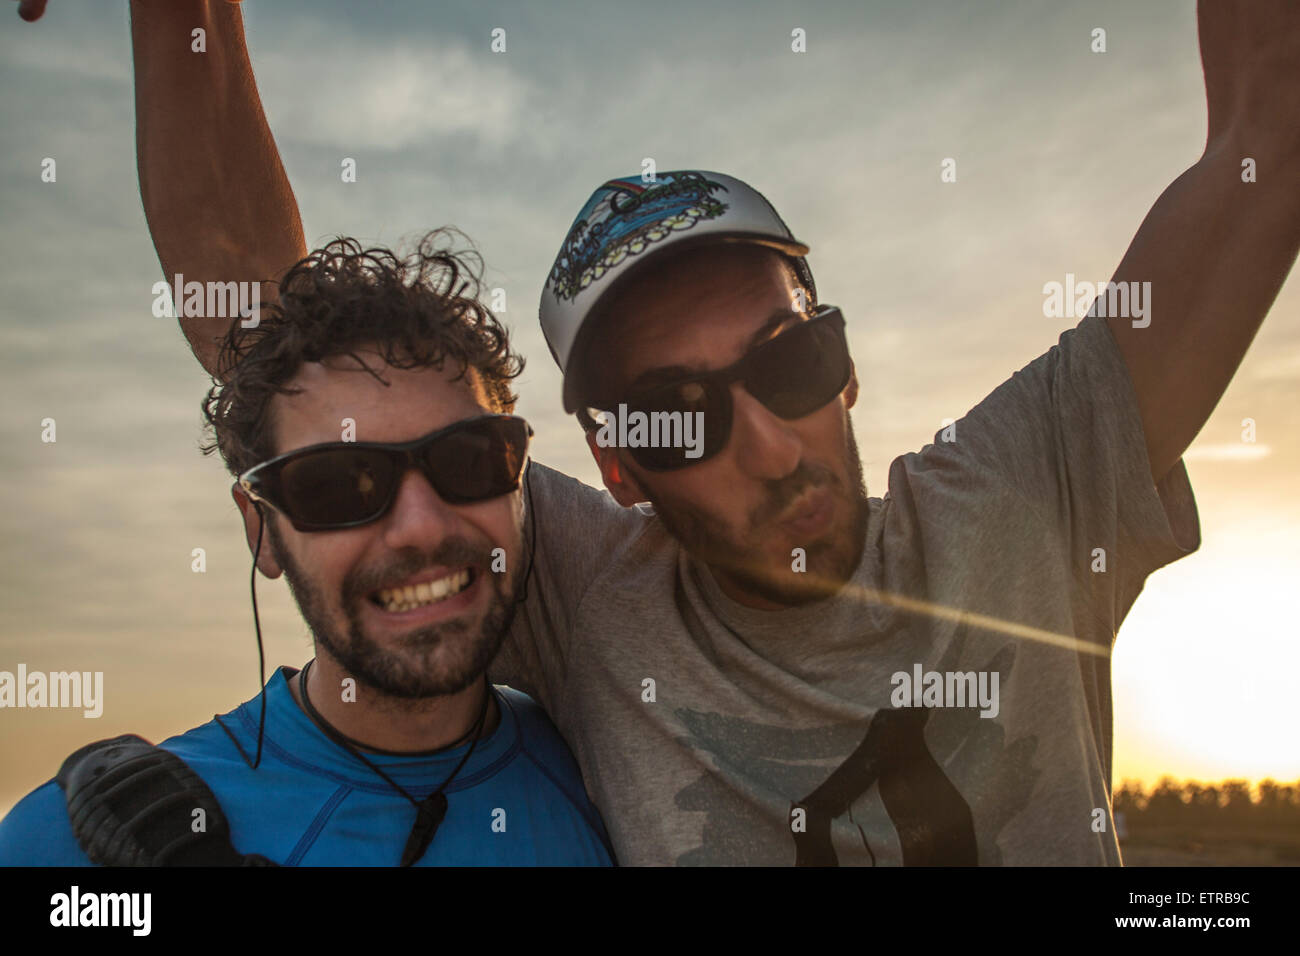 Lifestyle, non urban scene, male, young, men, sunglass, observing, facing sunlight, hat, T-shirt, Generation Y - Stock Image